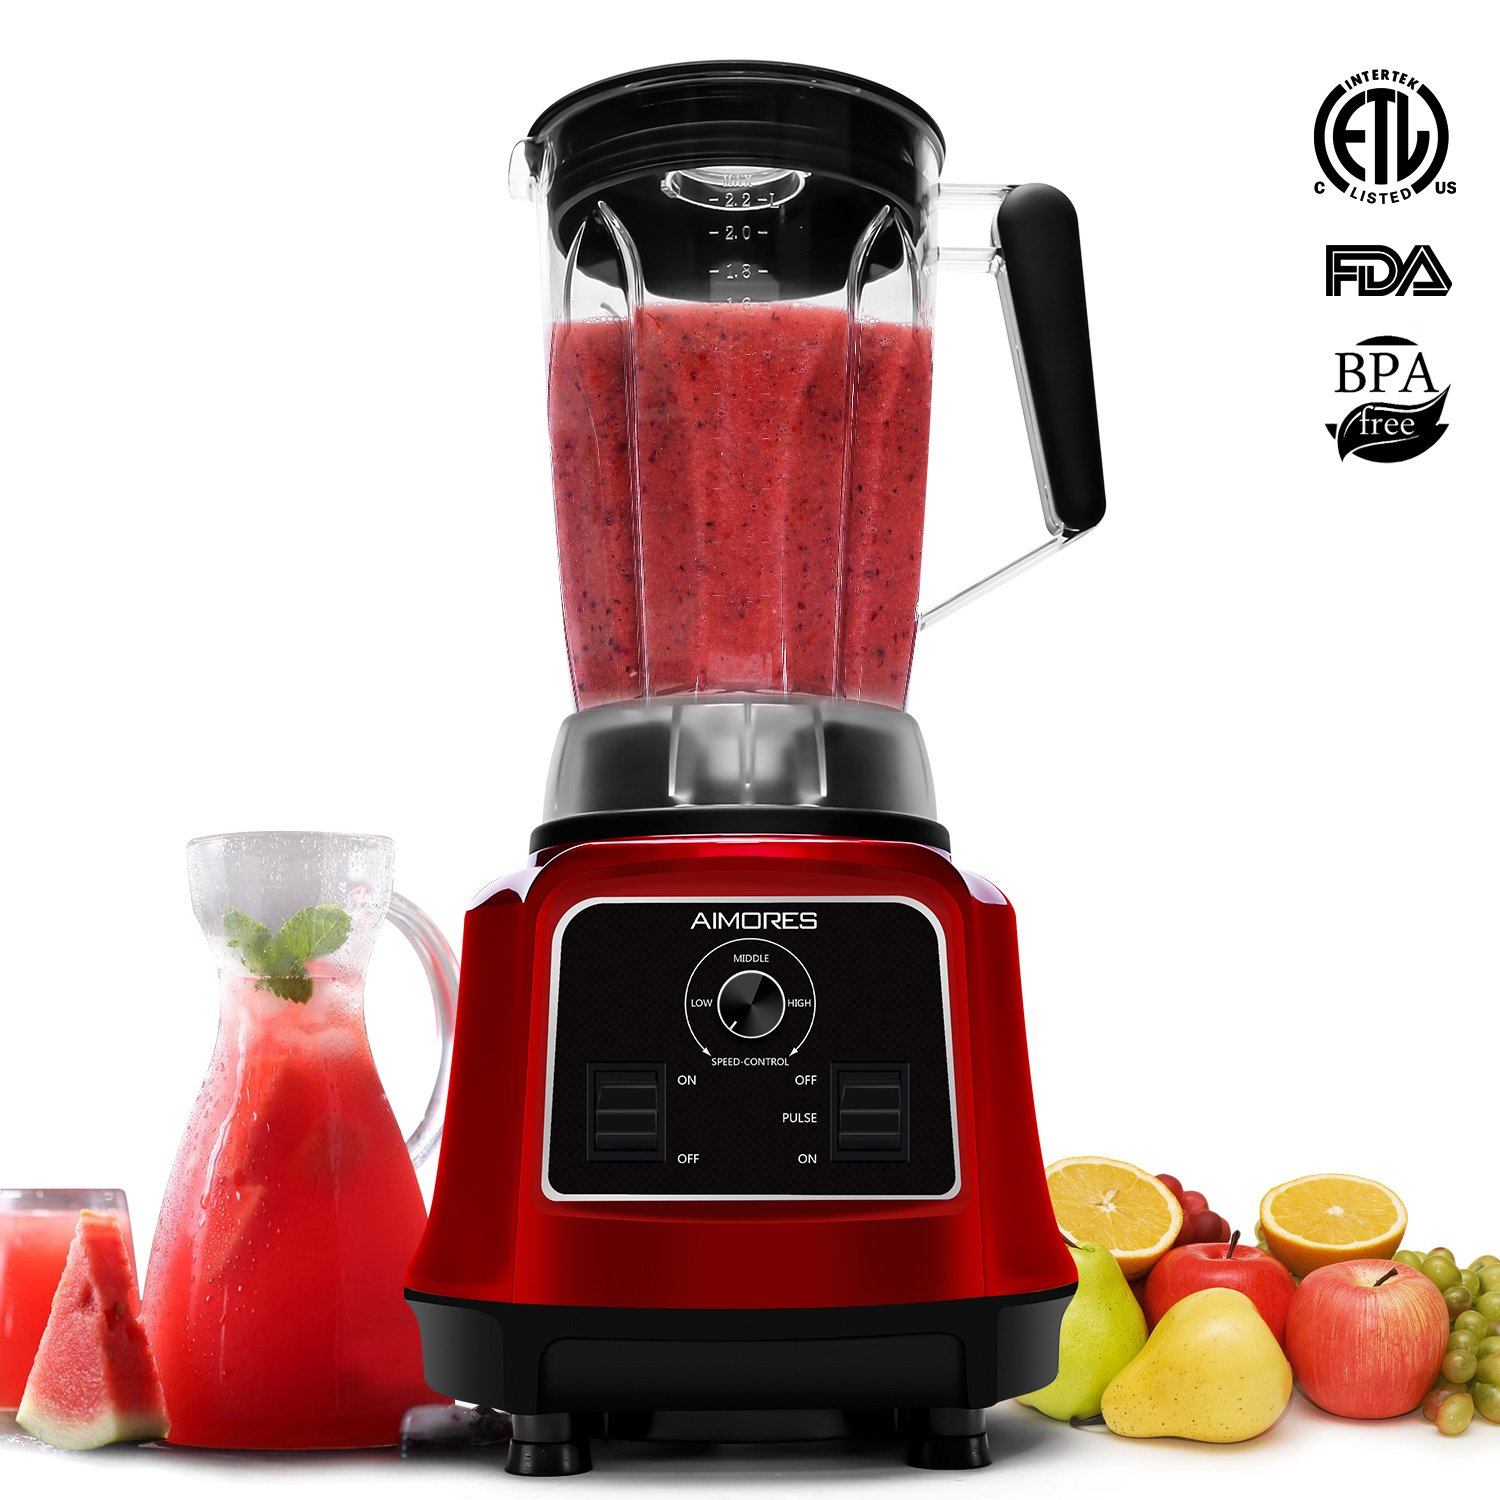 Professional Blender Aimores for Smoothie | 750z. High Speed Juicer, Ice Cream Maker | Optimized 6 Sharp Blades | Auto Clean & Simple Control | Recipe & Tamper | ETL & FDA Certified (Red)